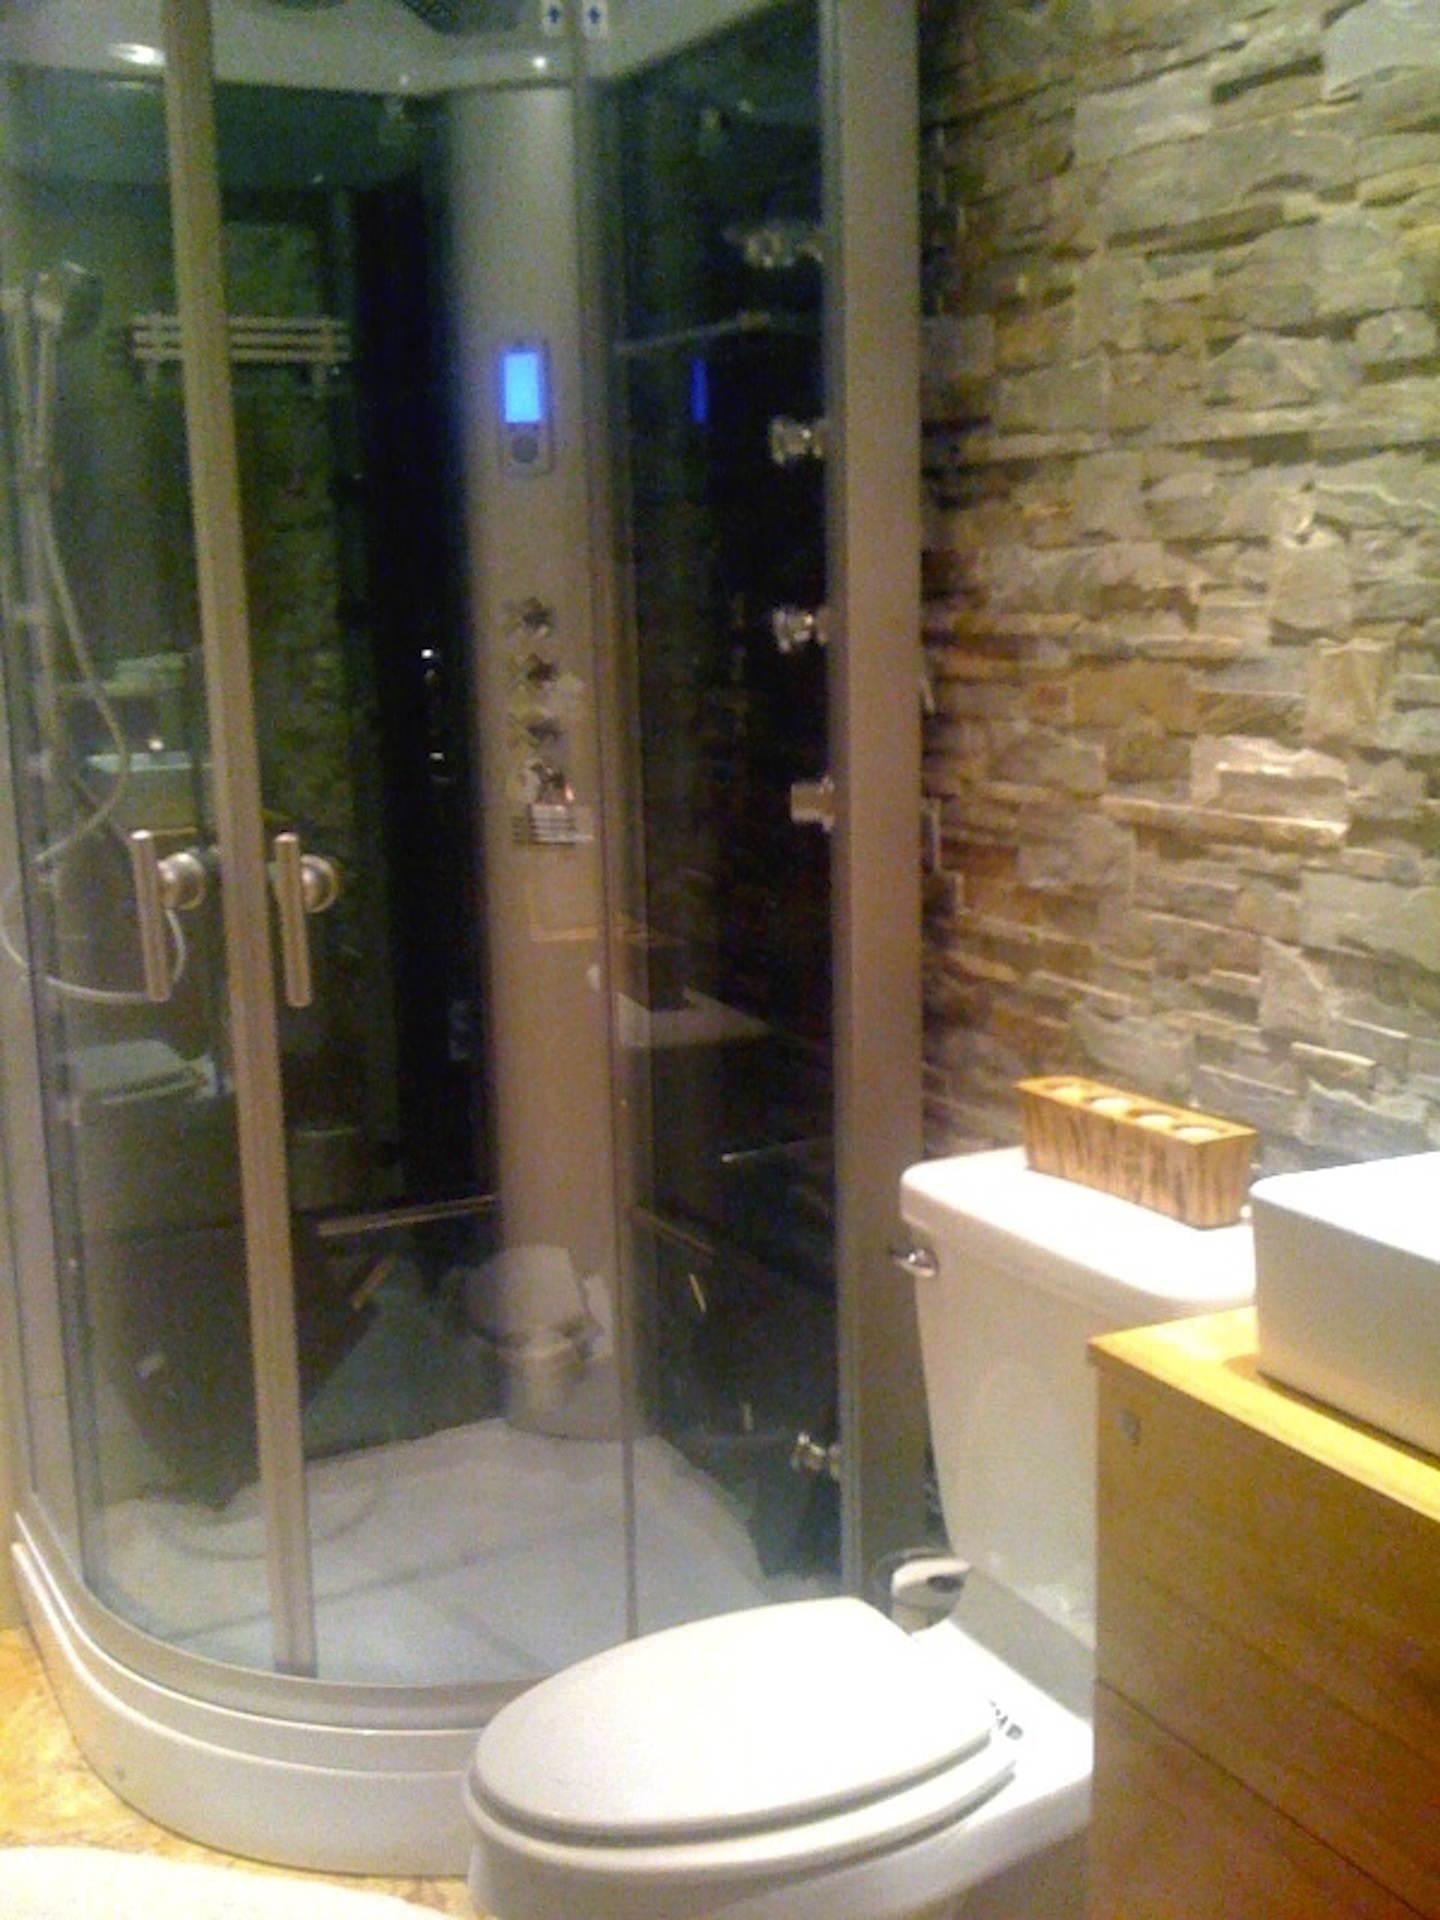 Steam shower in modern bathroom